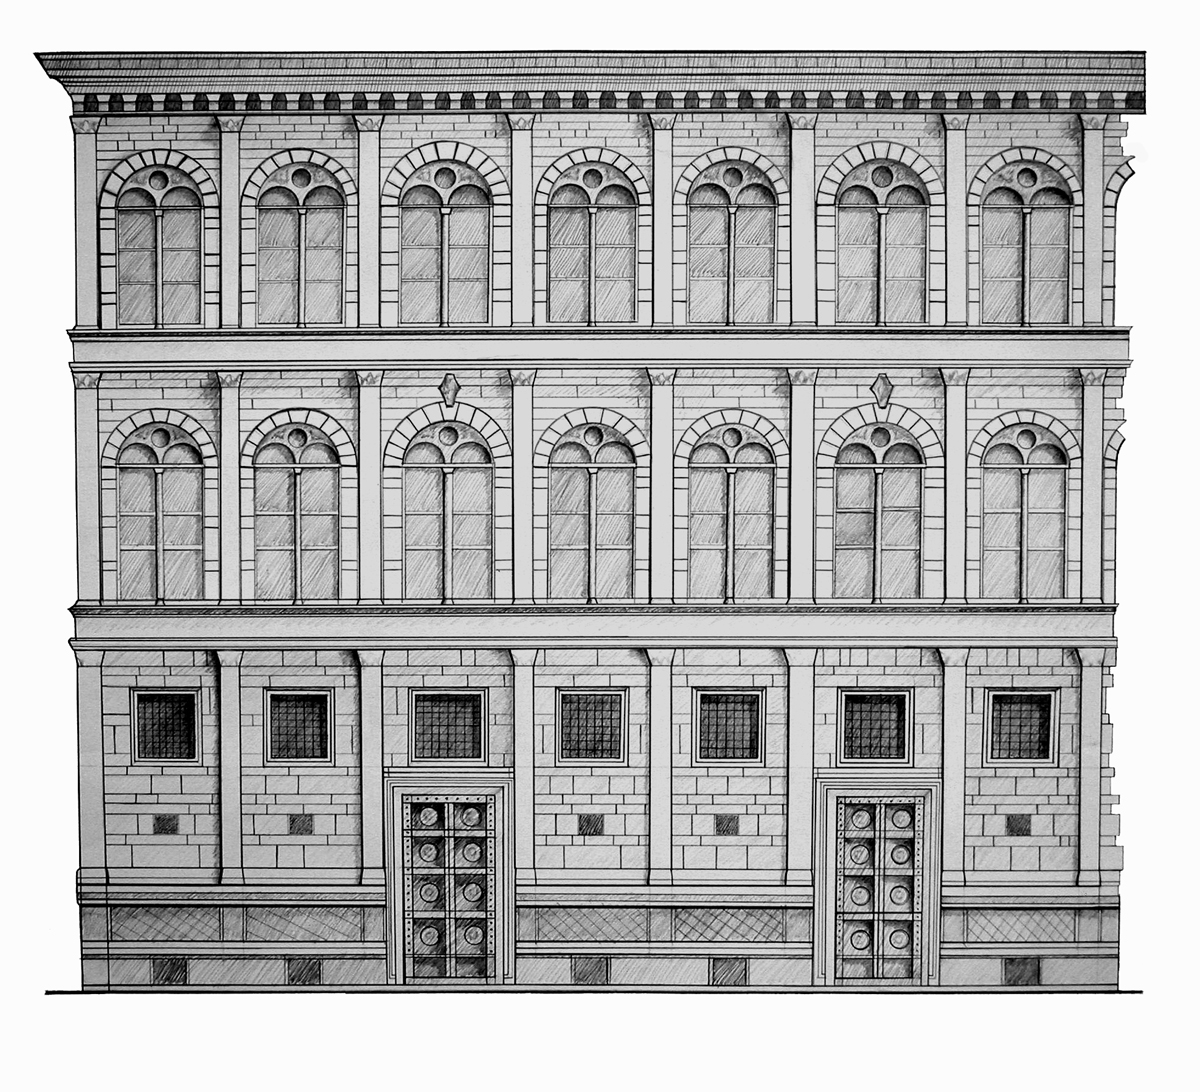 4318776 additionally File Santa Maria Novella  Florence    0851 together with Informations Florence also Wiki 2 19 878 1076 1089 View Renaissance 1 Profile Medici Palace 1444 1449 Florence Italy also Palazzo Rucellai. on alberti facade